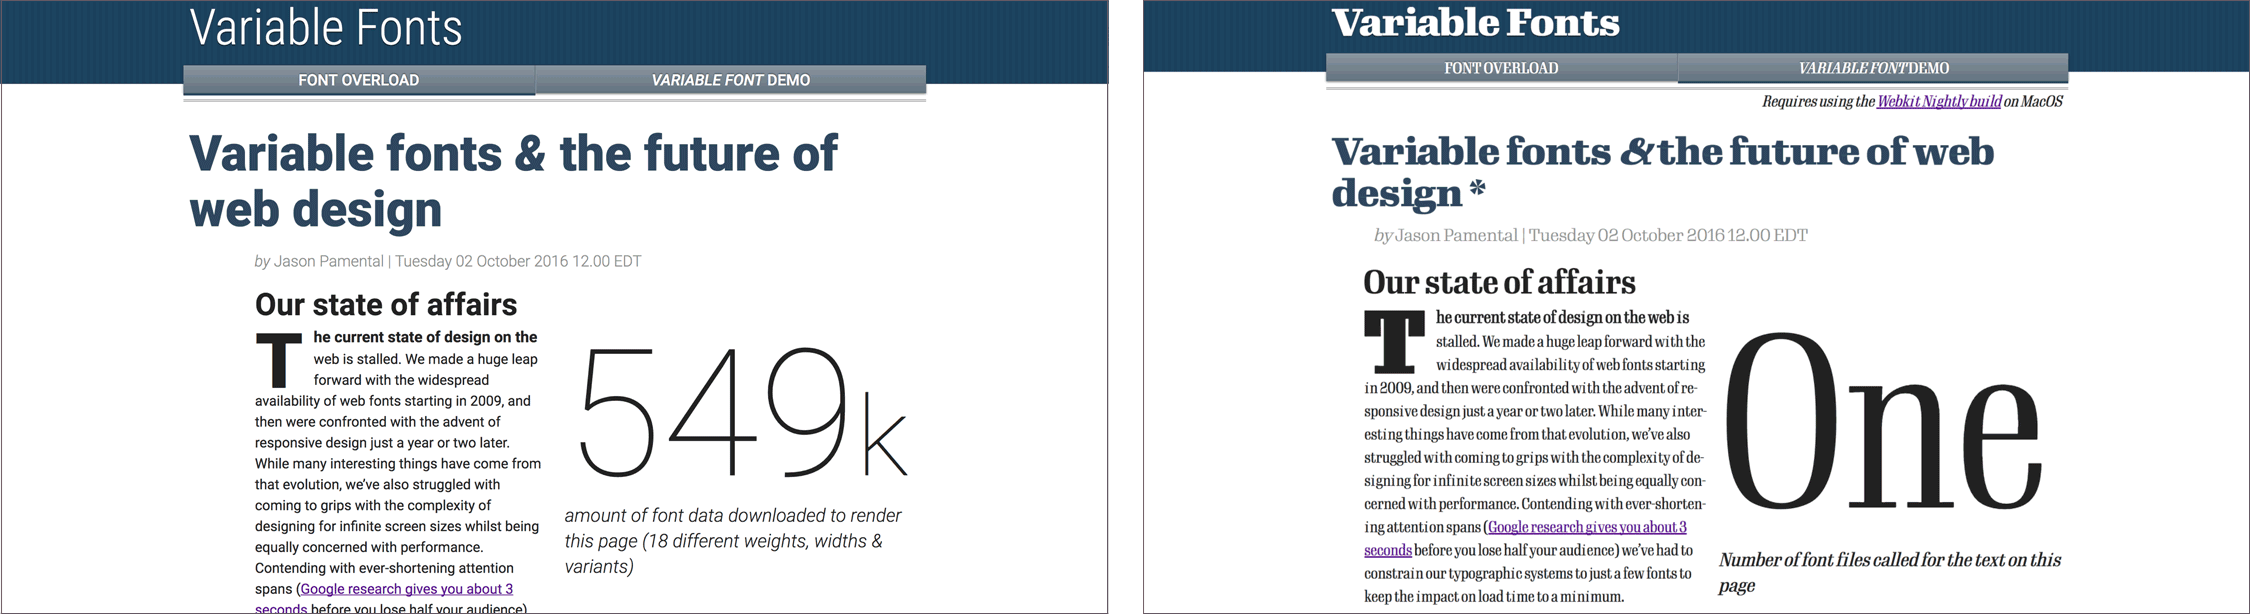 One year in: an update on Variable Fonts - VariableFonts io